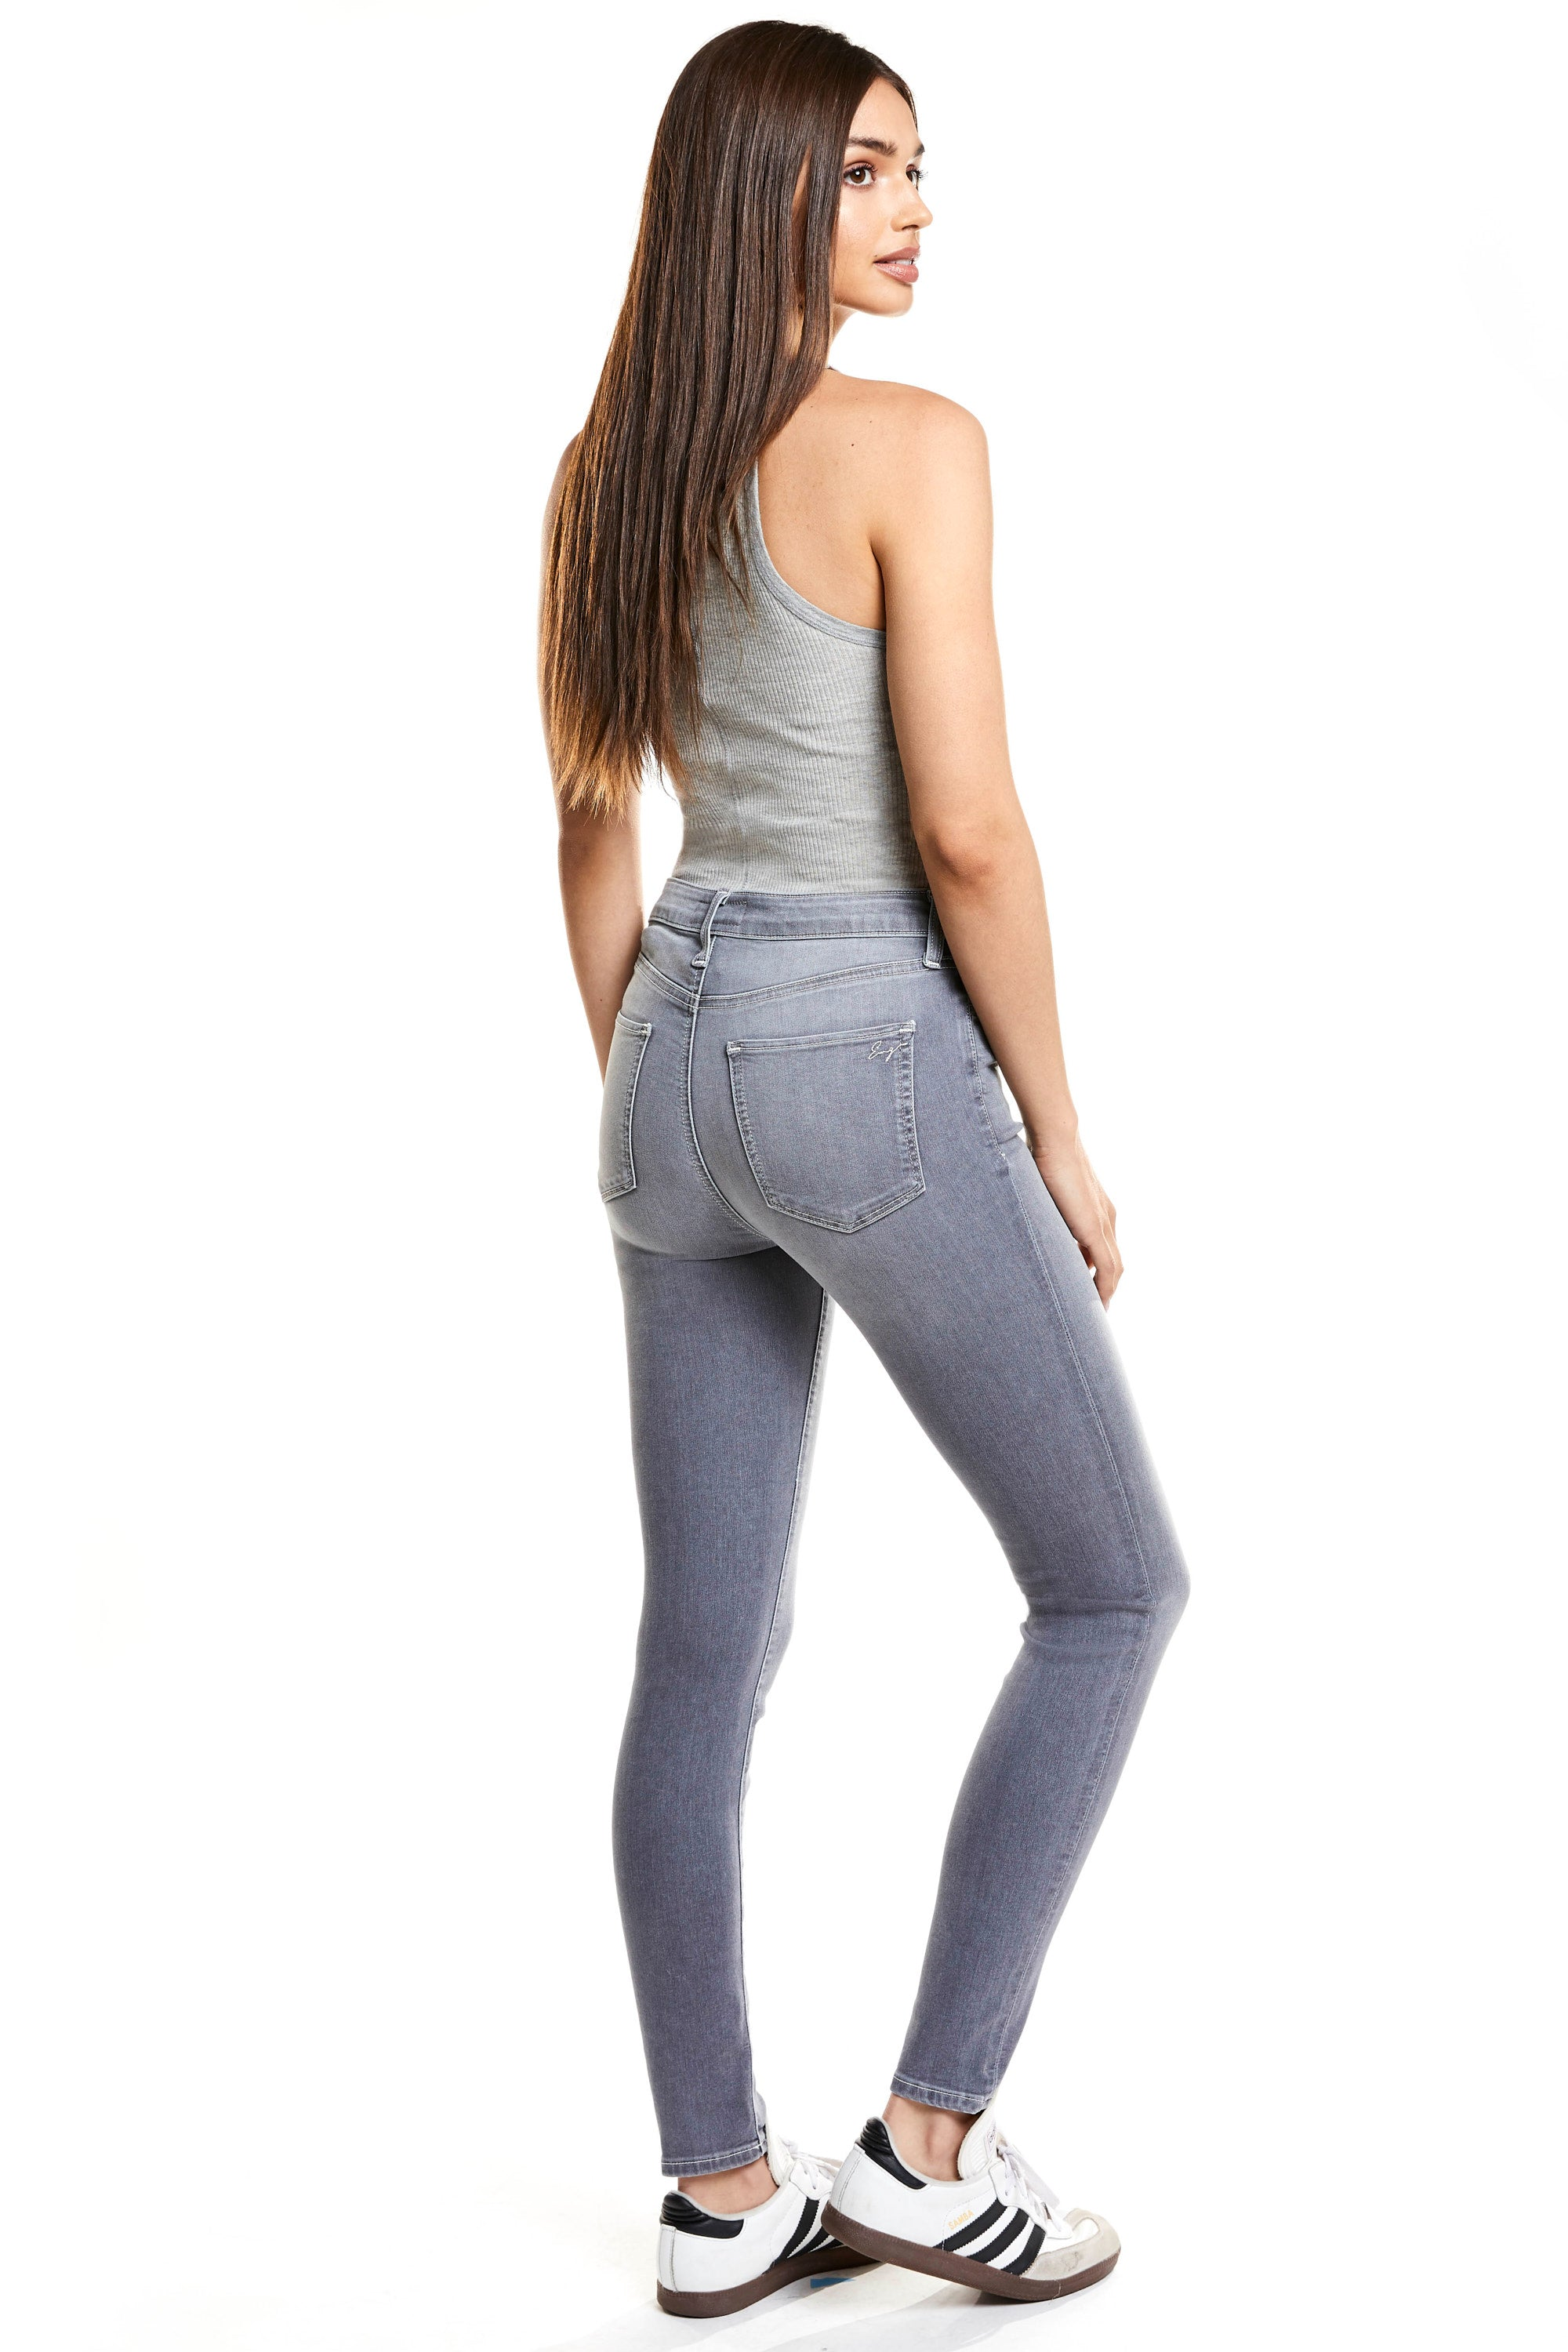 Giselle High Rise Skinny - Storm